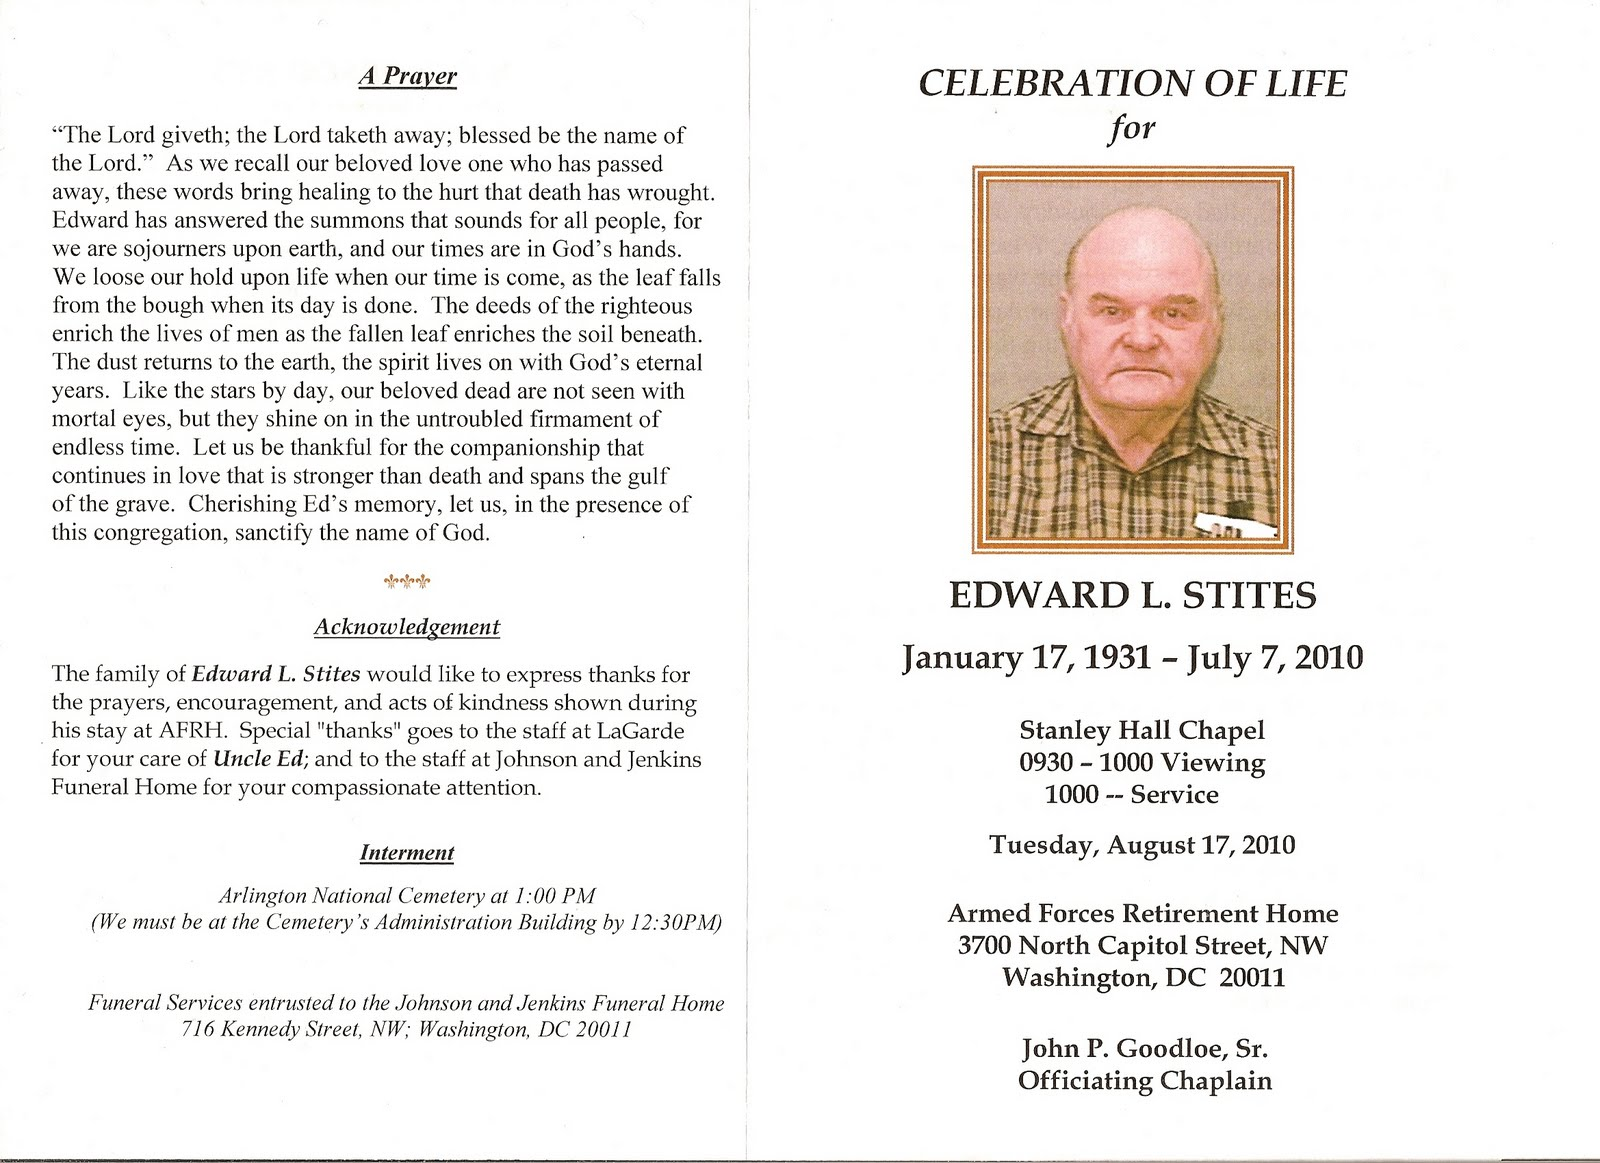 Free Funeral Program Cover Templates Funeral%2520Program%2520Outside Free  Funeral Program Cover Templates Sample Obituary Program Sample Obituary  Program  Free Obituary Program Template